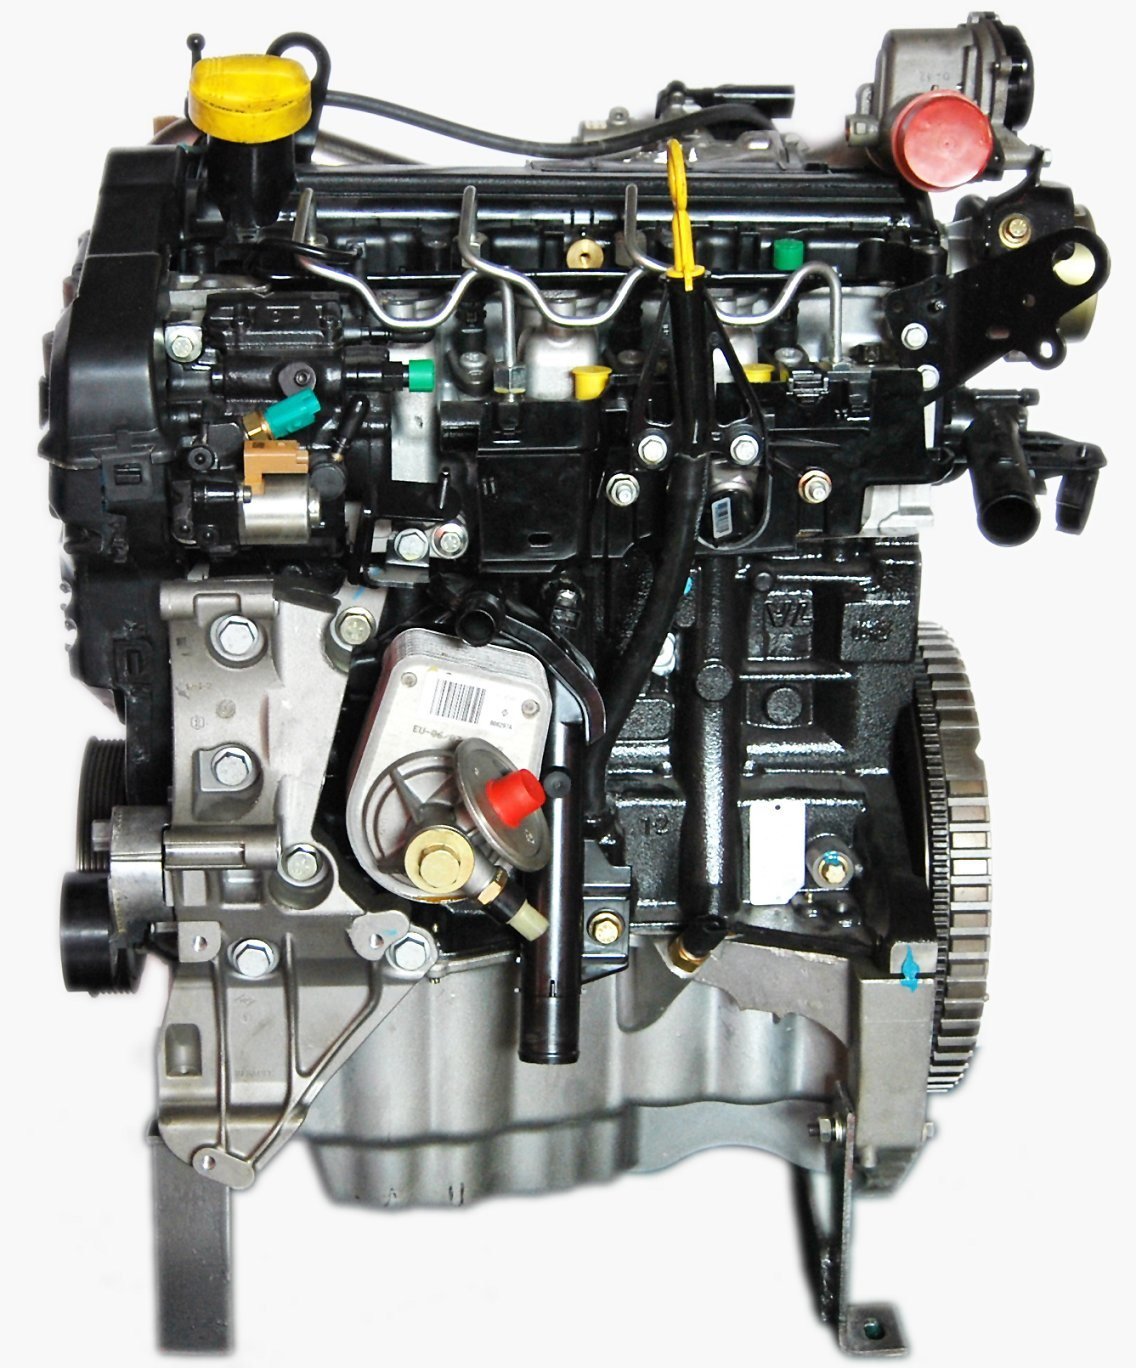 Euroiv-Standard Diesel Engine for Minitrucks